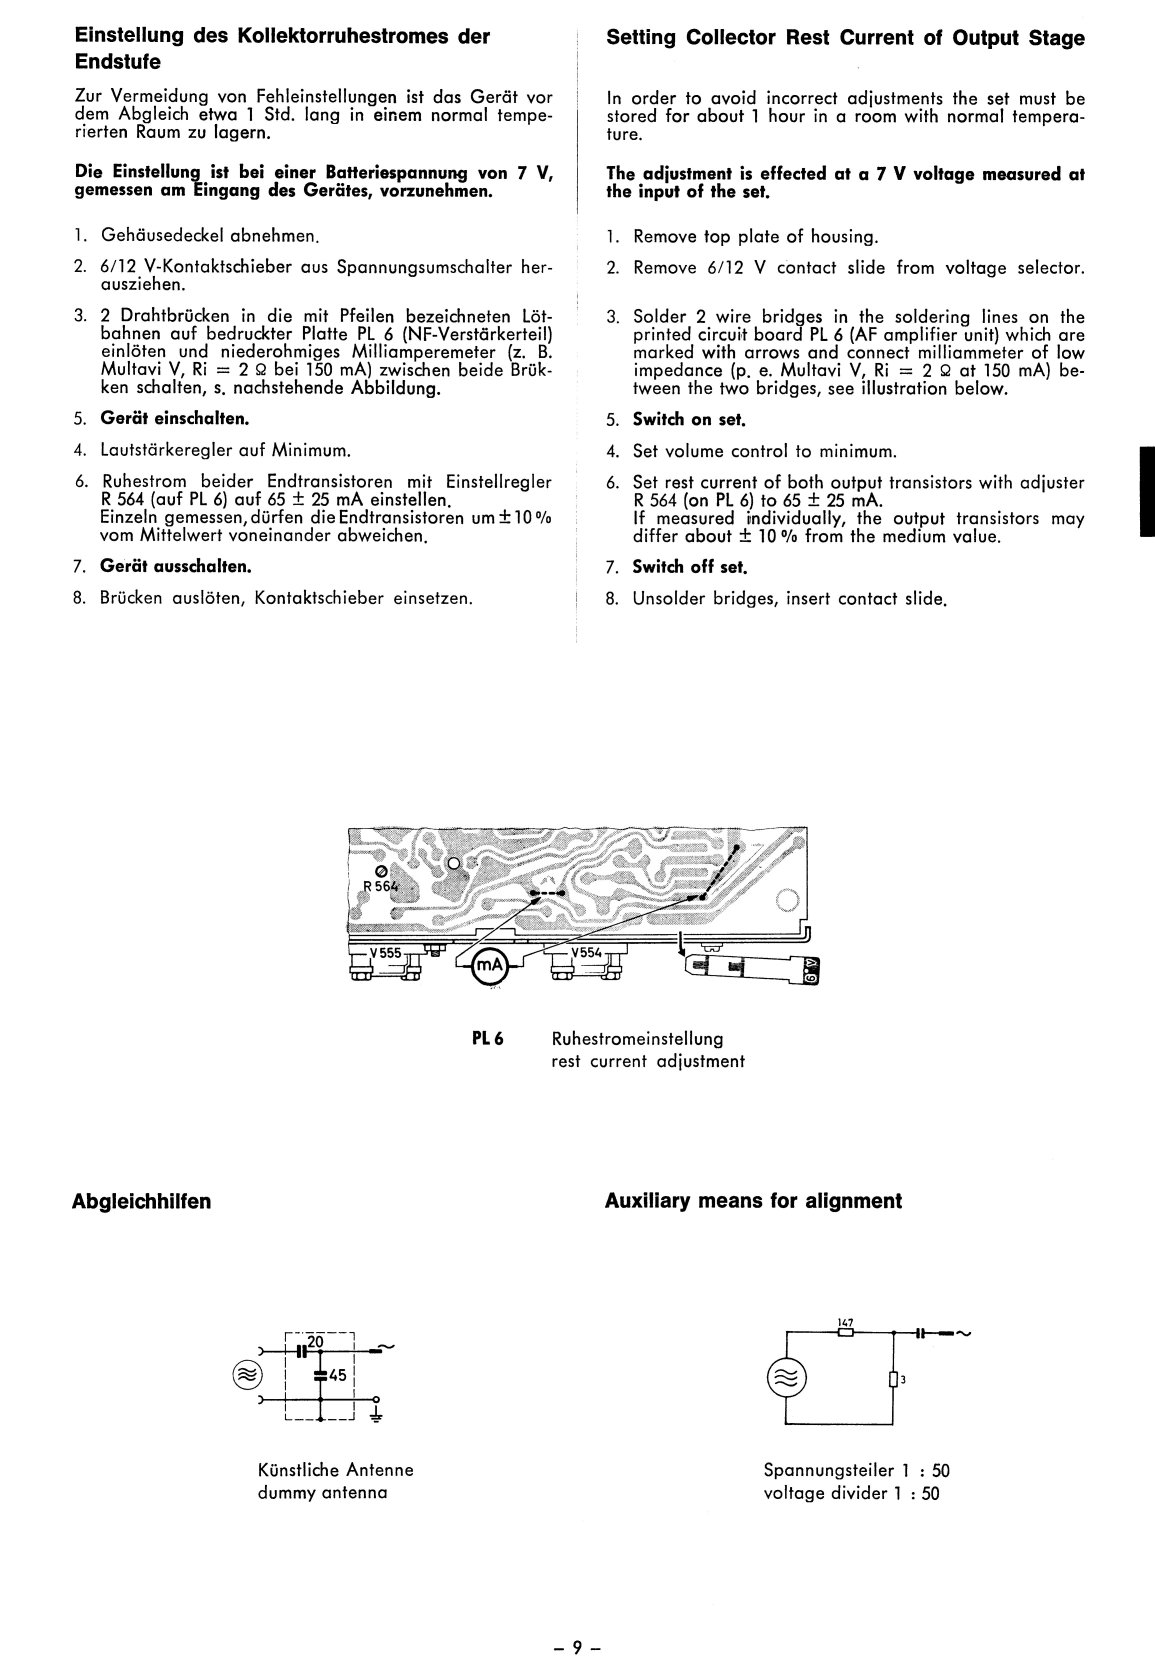 1968 69 Blaupunkt Essen Radio Service Manual For A 197679 Http Wwwthesambacom Vw Archives Inf Wiringjpg Download All Pages In Tif Format Zip File 4 Mb